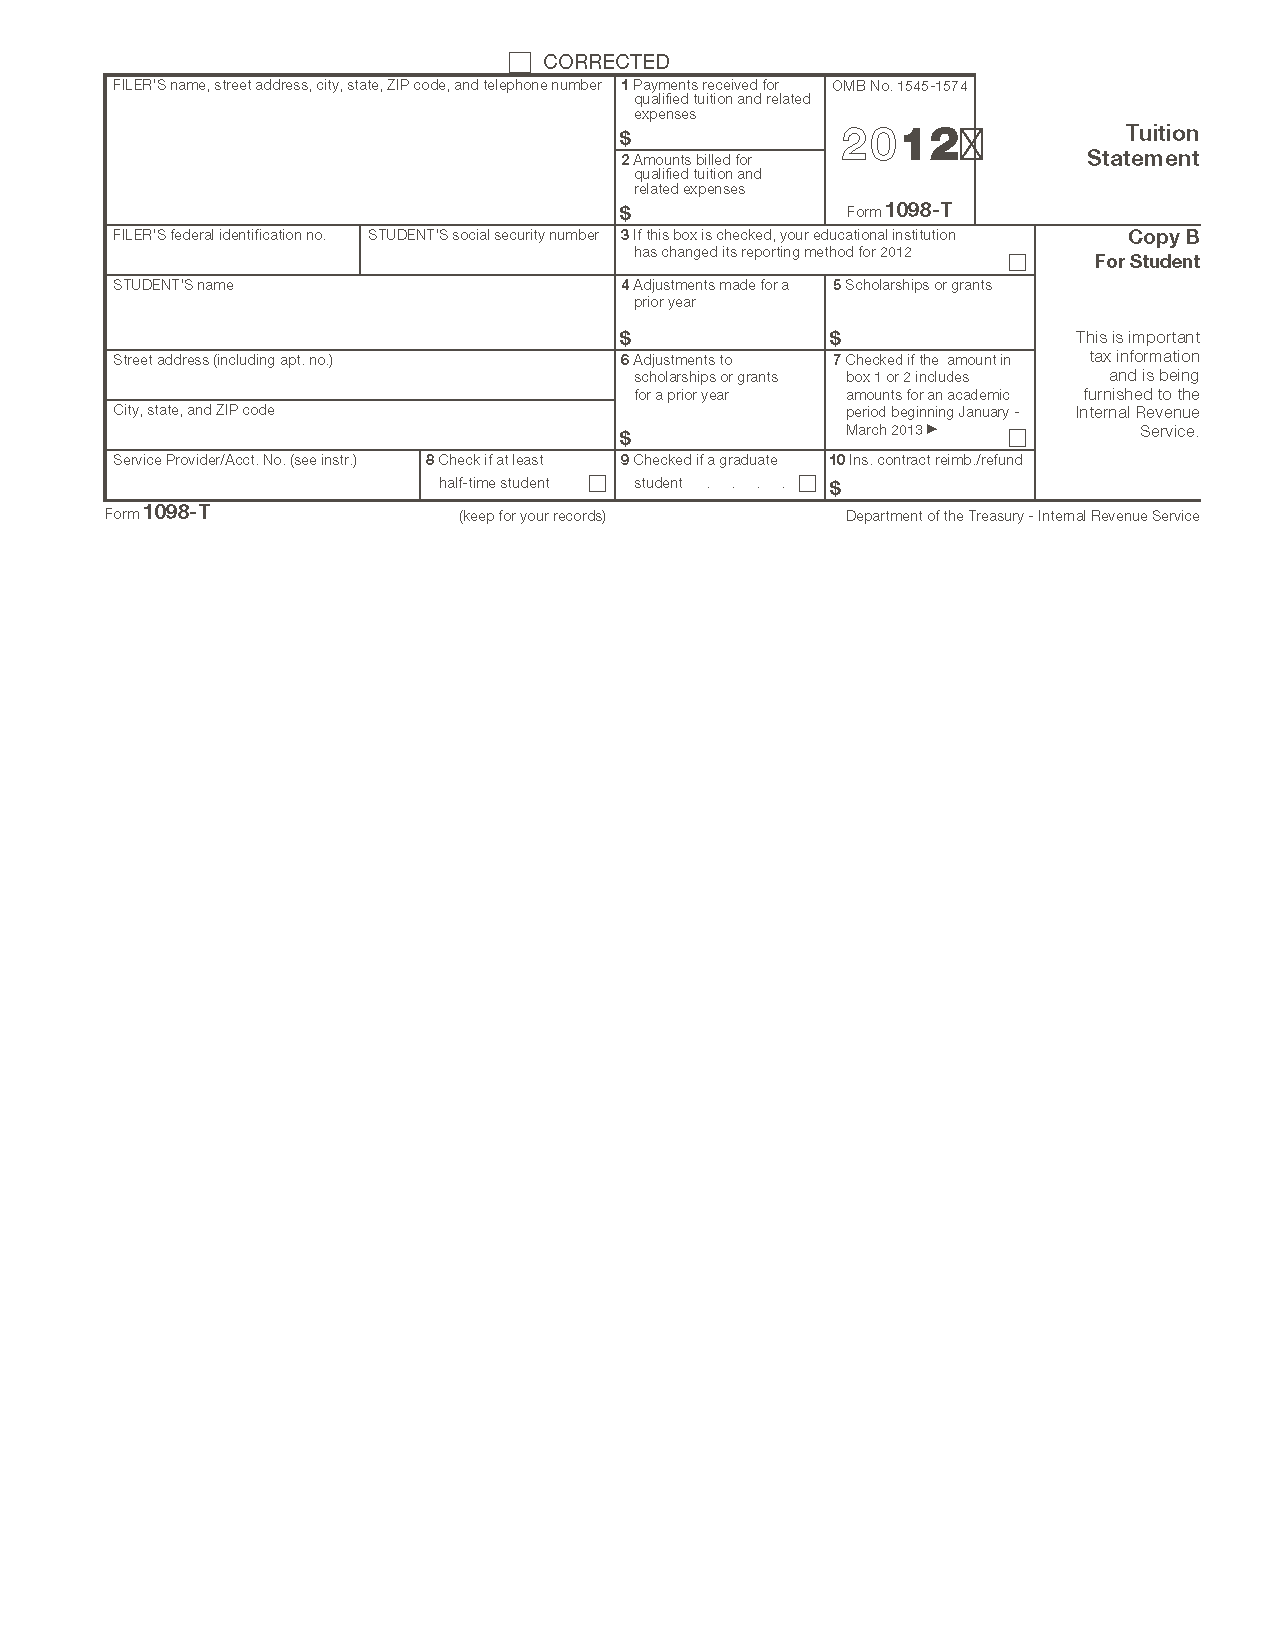 Form 1098-T Tuition Statement (Info Copy Only)